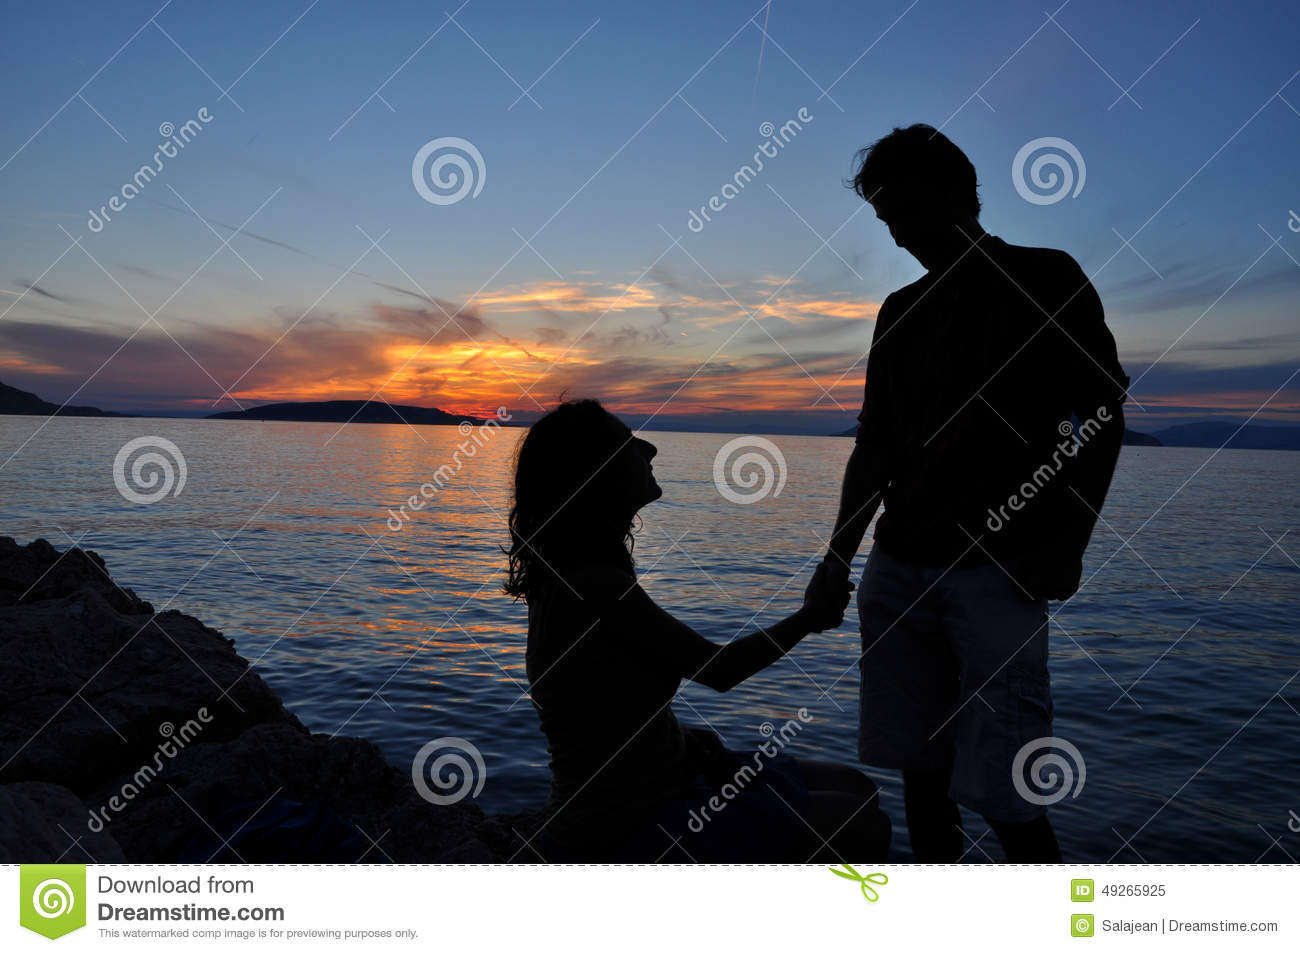 Romantic couple silhouette over sea sunset background